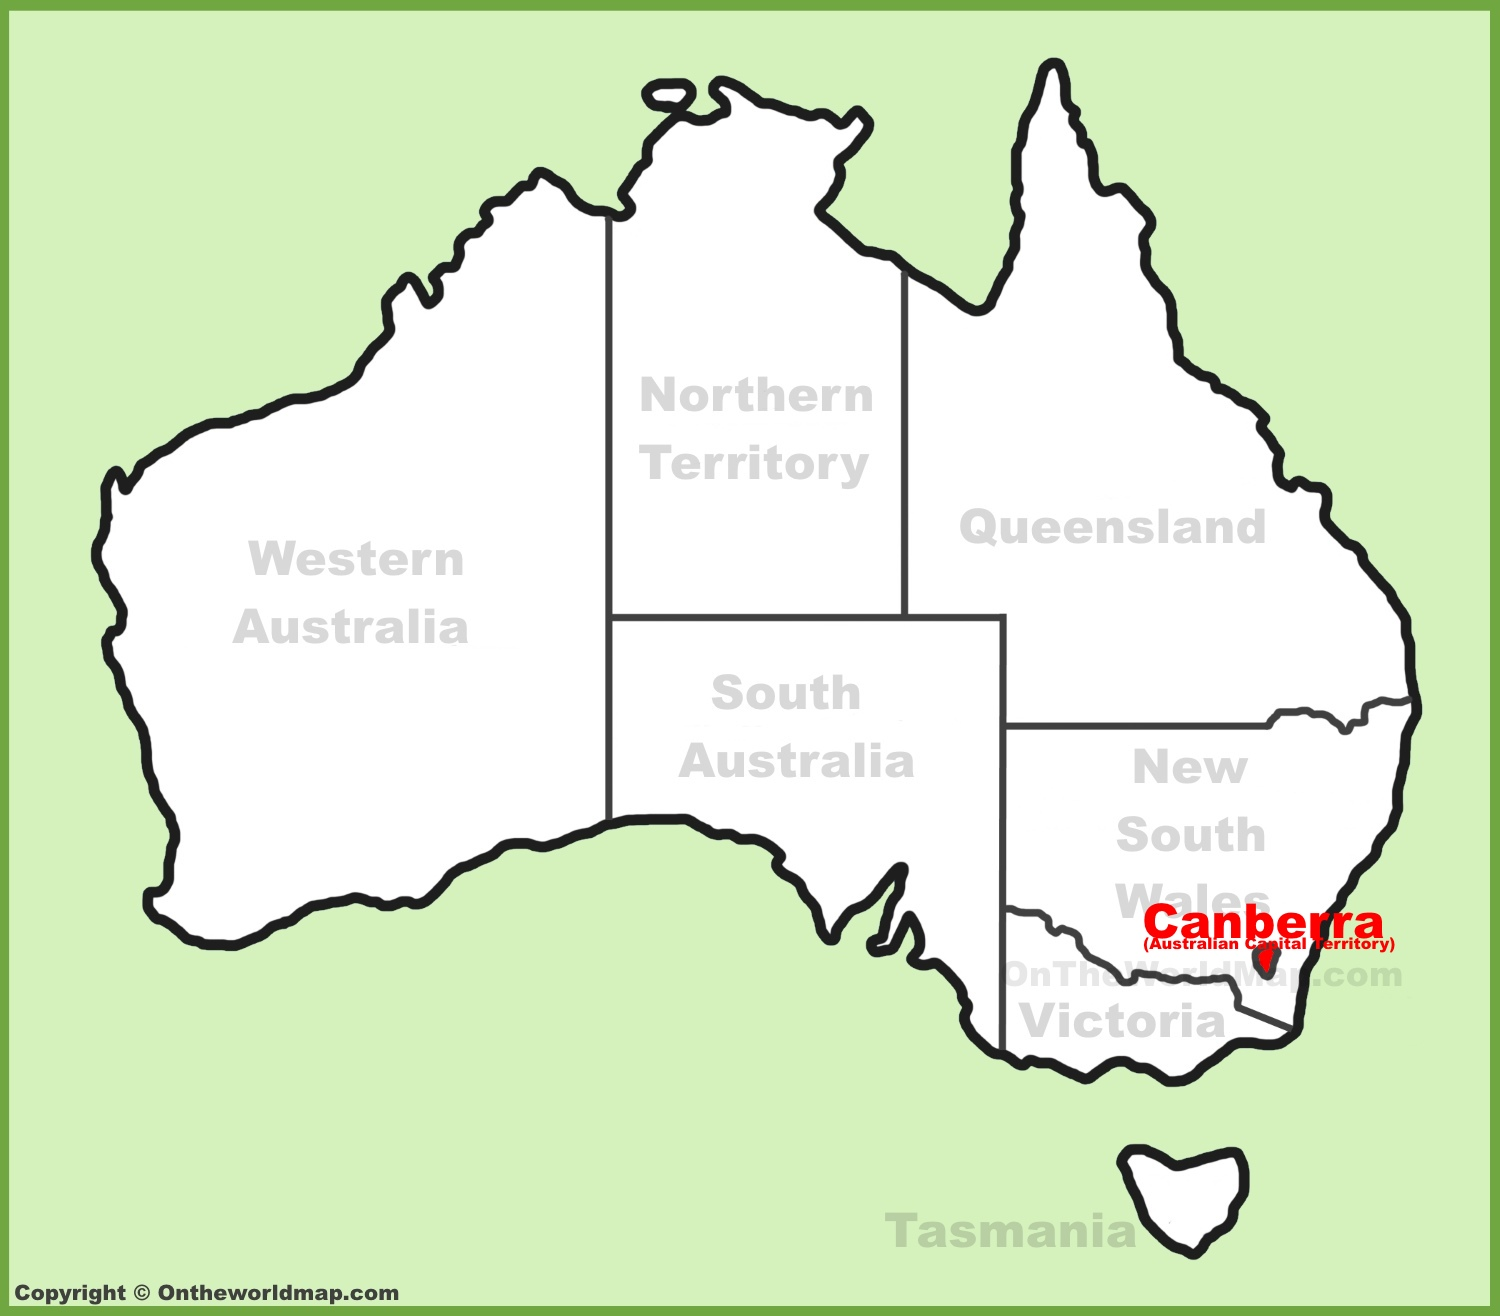 canberra location on the australia map